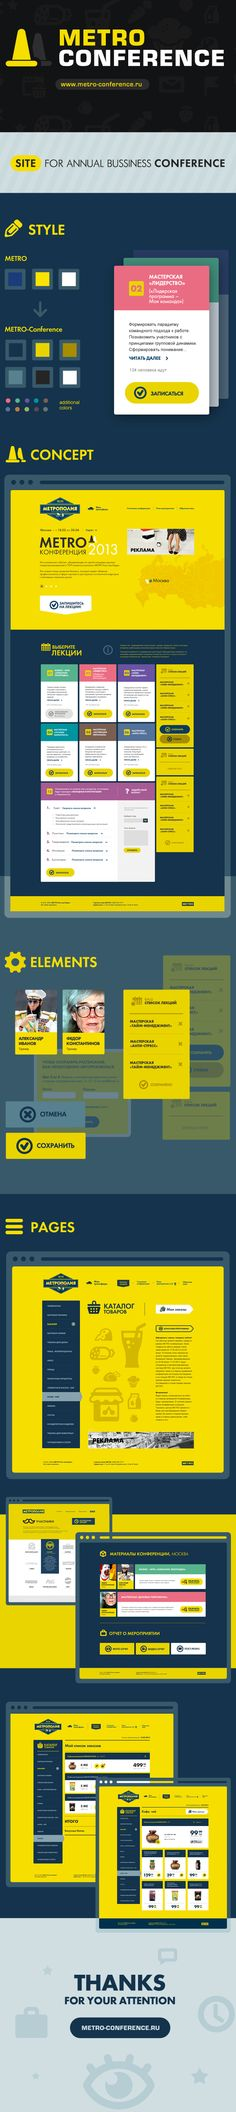 METRO Conference by The Family , via Behance